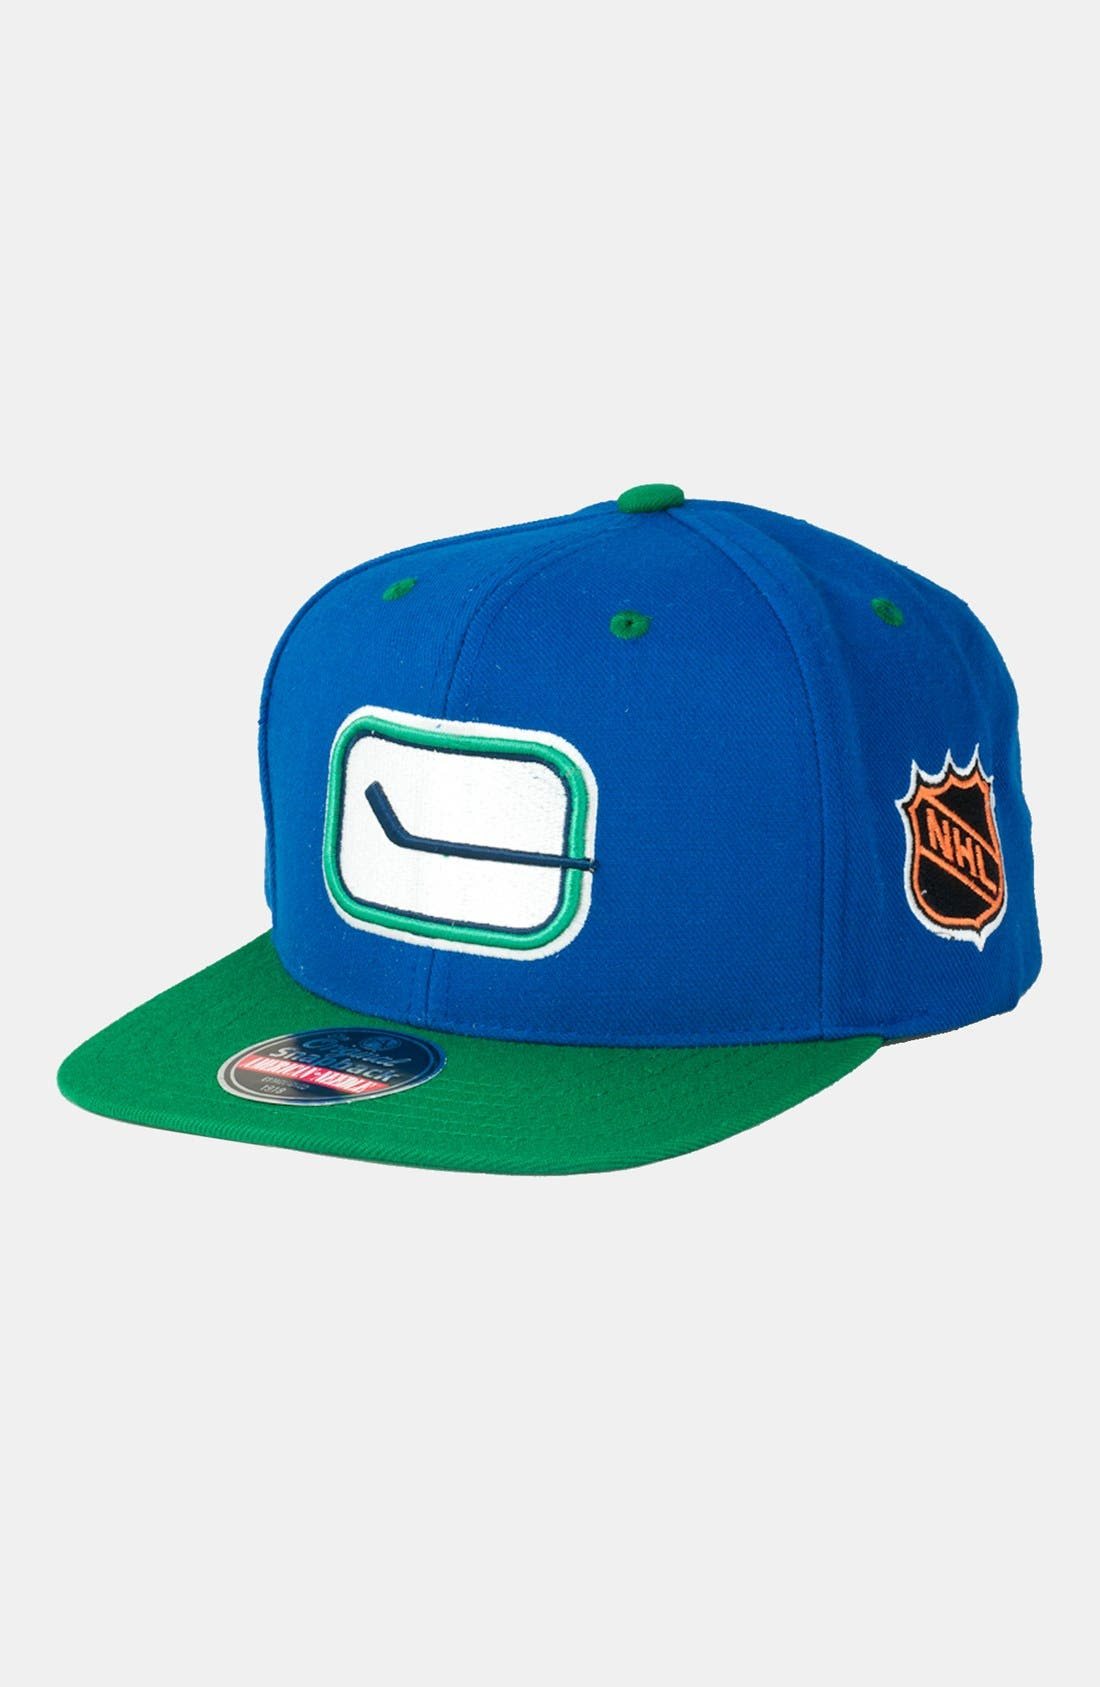 Main Image - American Needle 'Vancouver Canucks - Blockhead' Snapback Hockey Cap